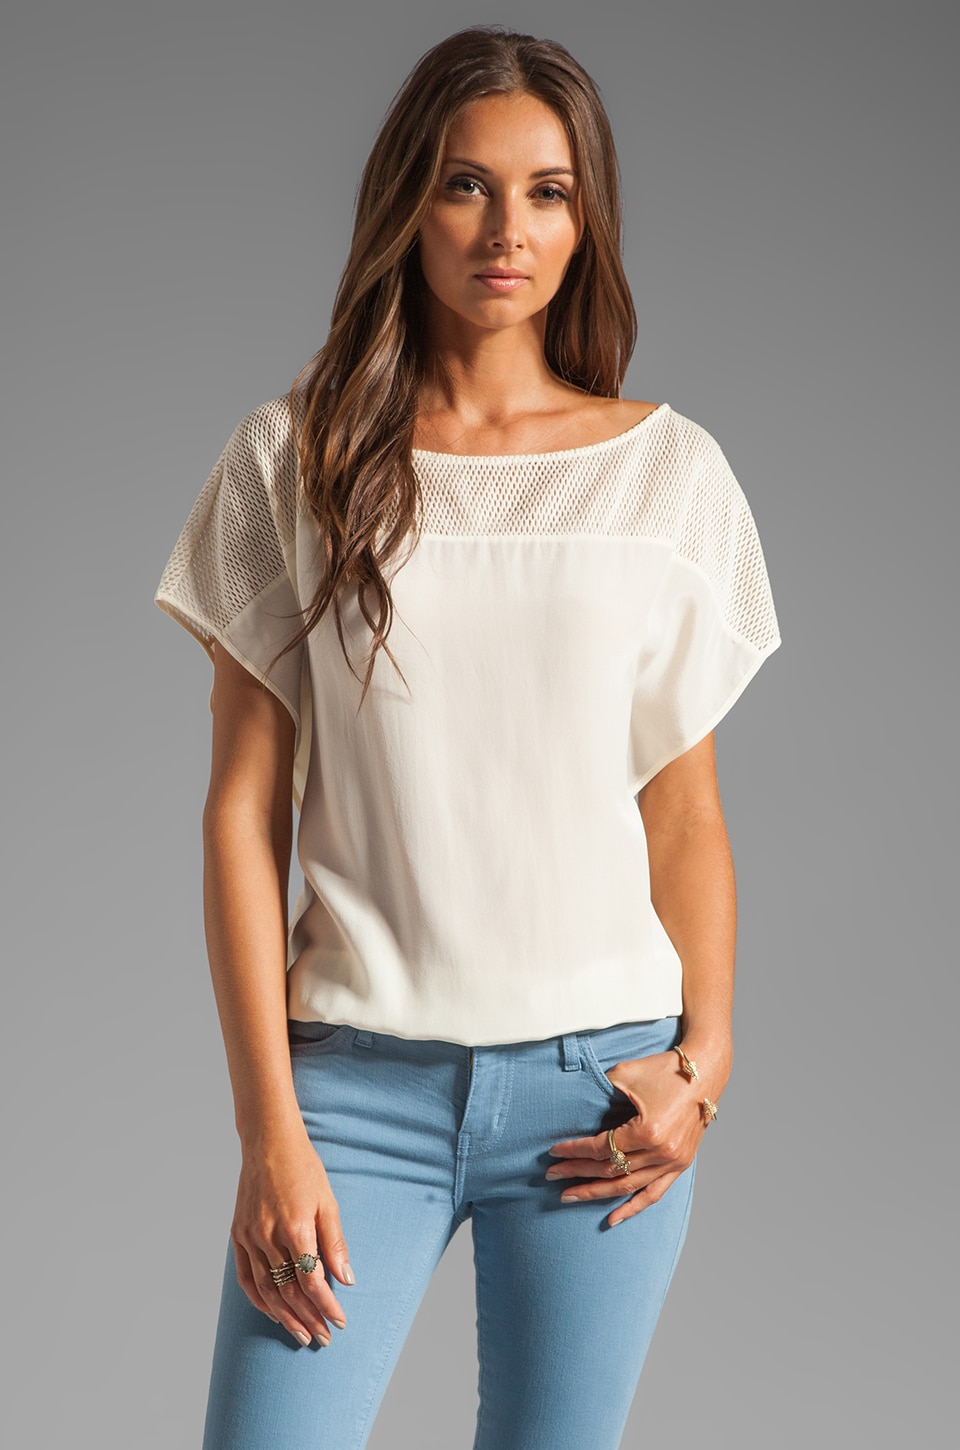 Akiko Top Mesh Short Sleeve Blouse in Sand